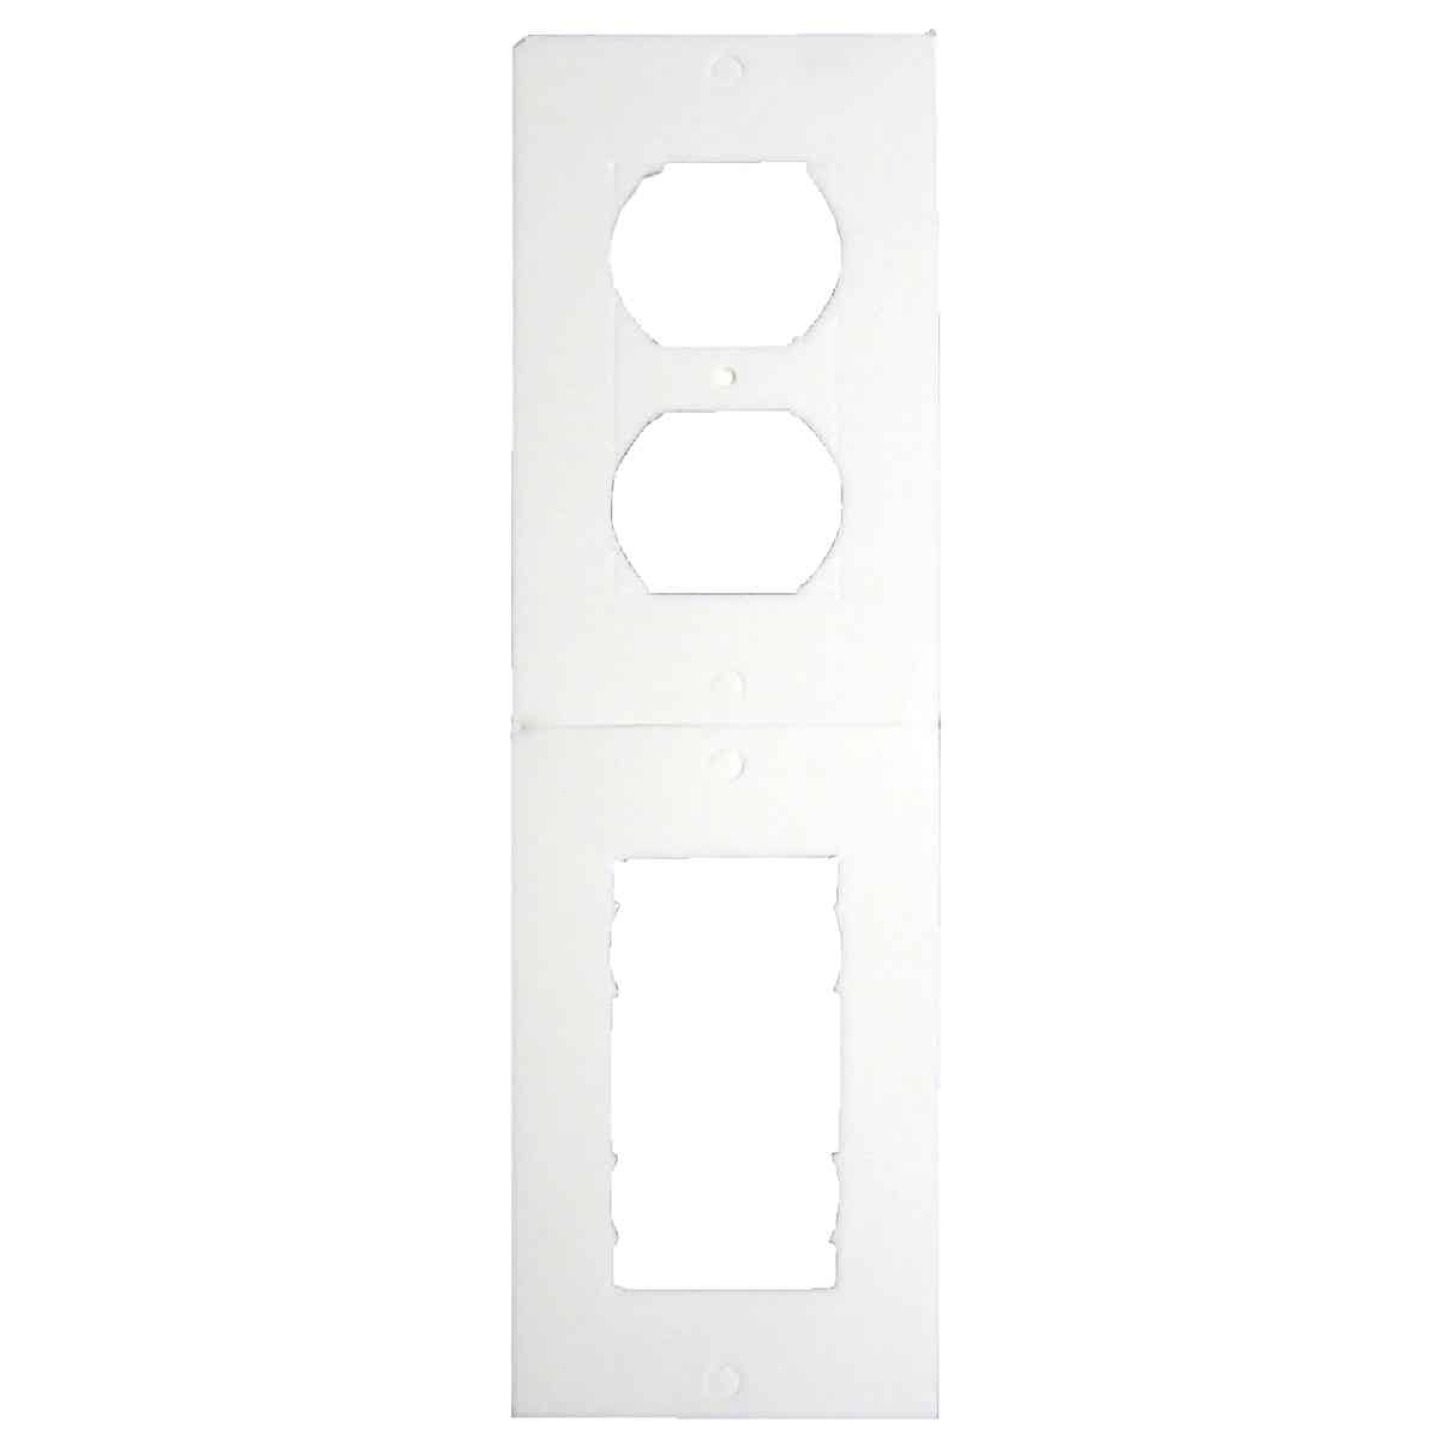 M-D Switch & Wall Plate Insulator, (6-Pack) Image 2